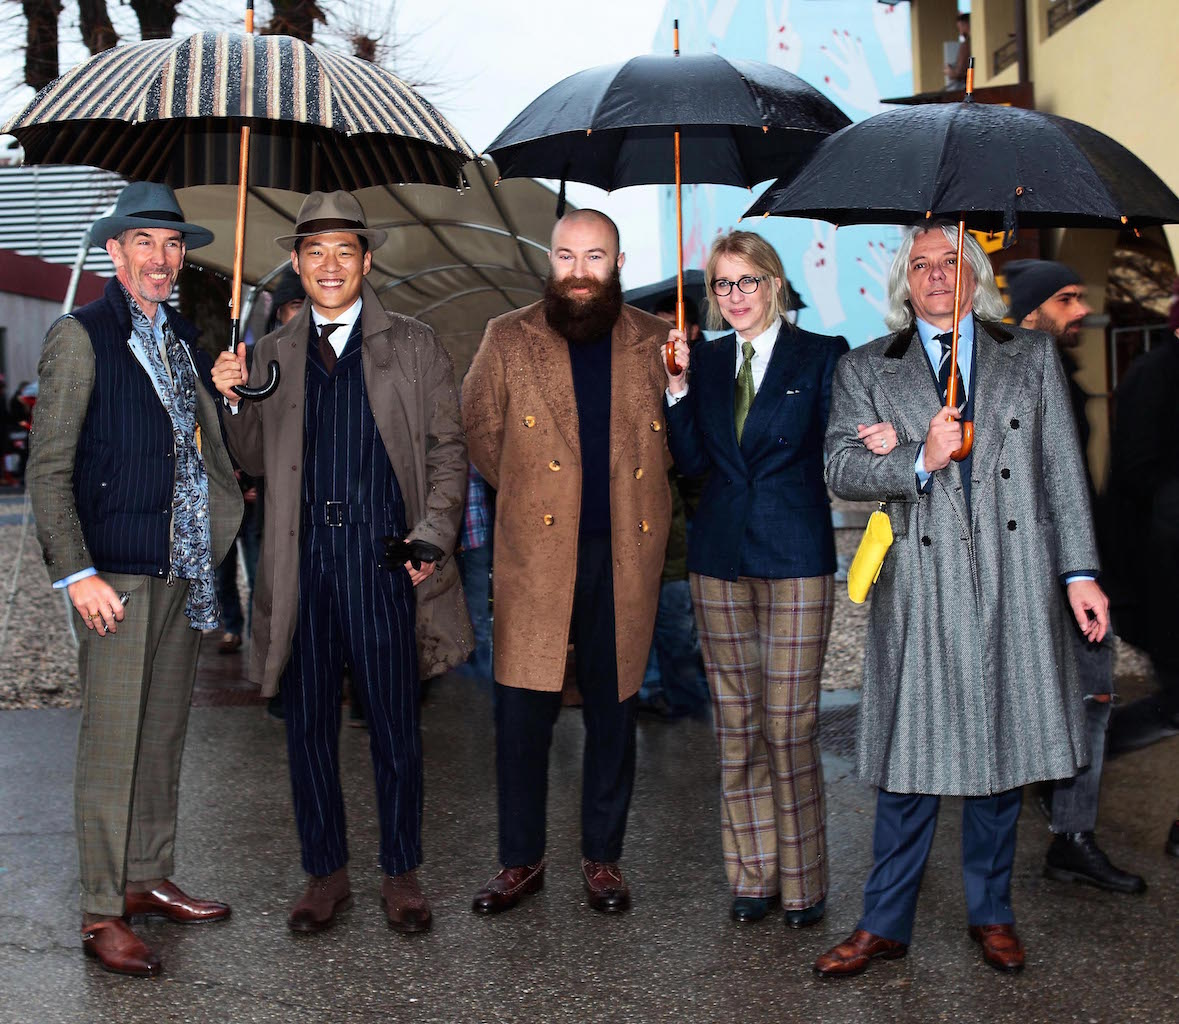 Video report of Pitti Uomo 89 by french blog Bonne Gueule